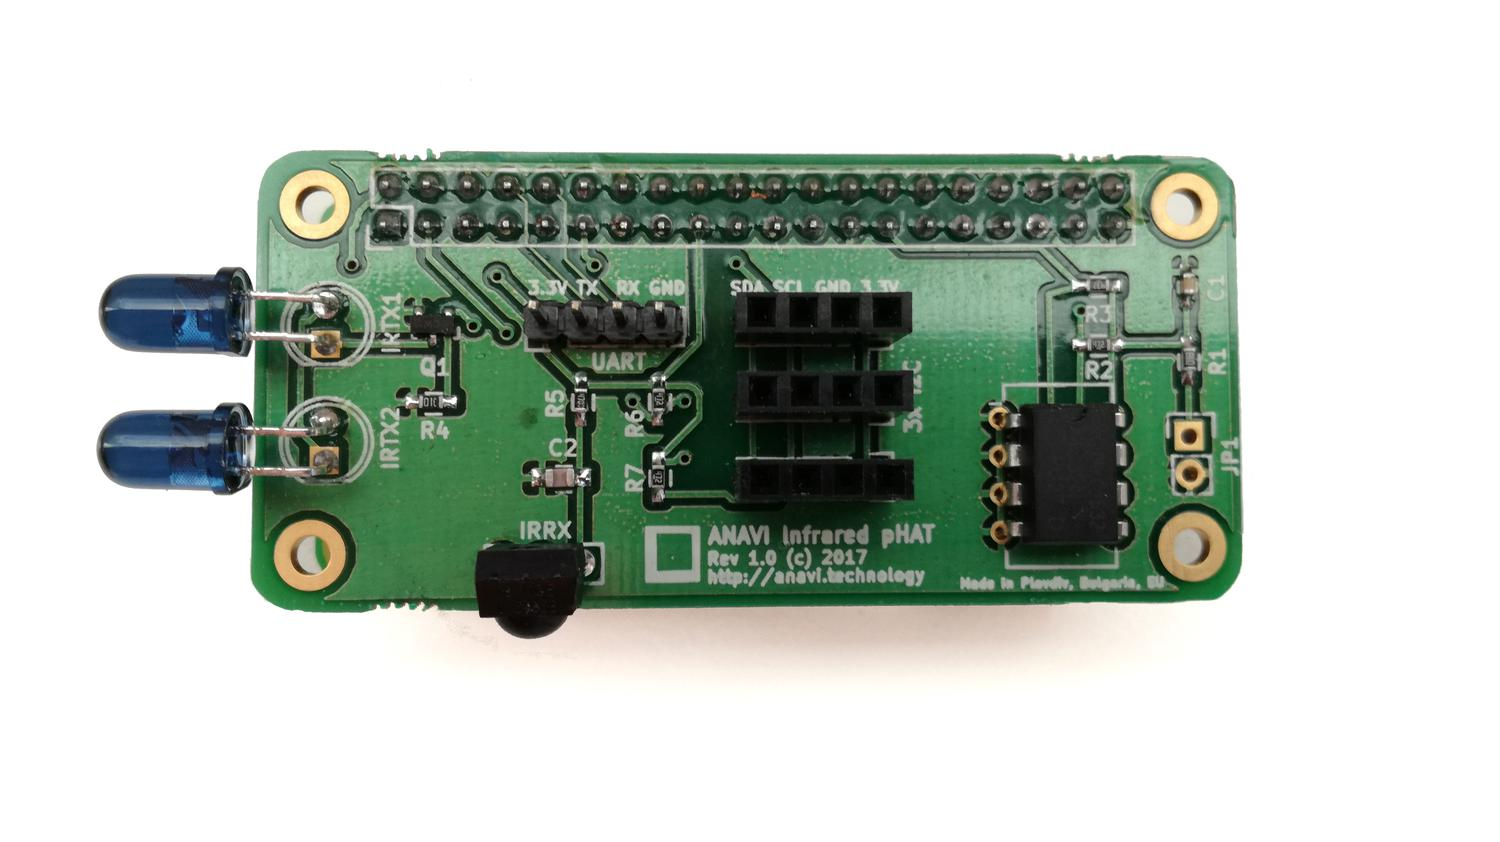 Anavi Infrared Phat Crowd Supply The Previous Circuit Makes It Work As An Transmitter We Can